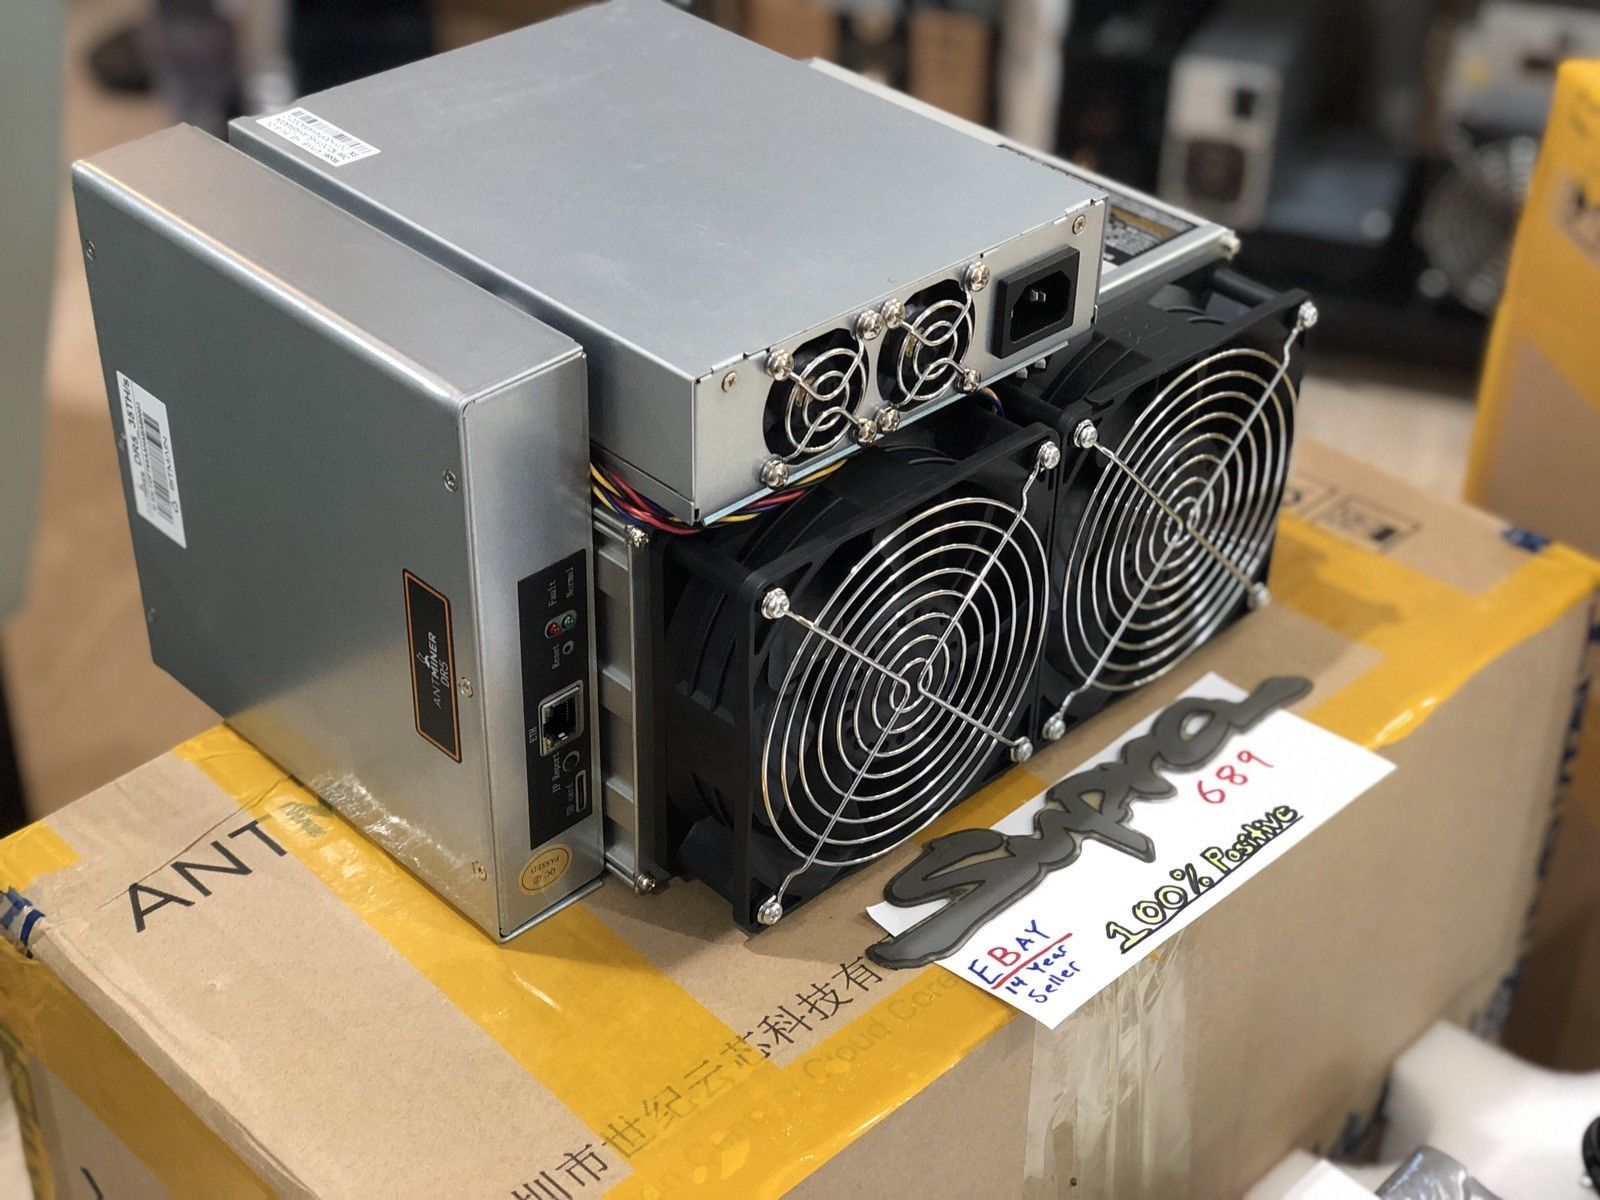 Details about Bitmain Antminer DR5 - 35TH/s DCR Decred ASIC Miner